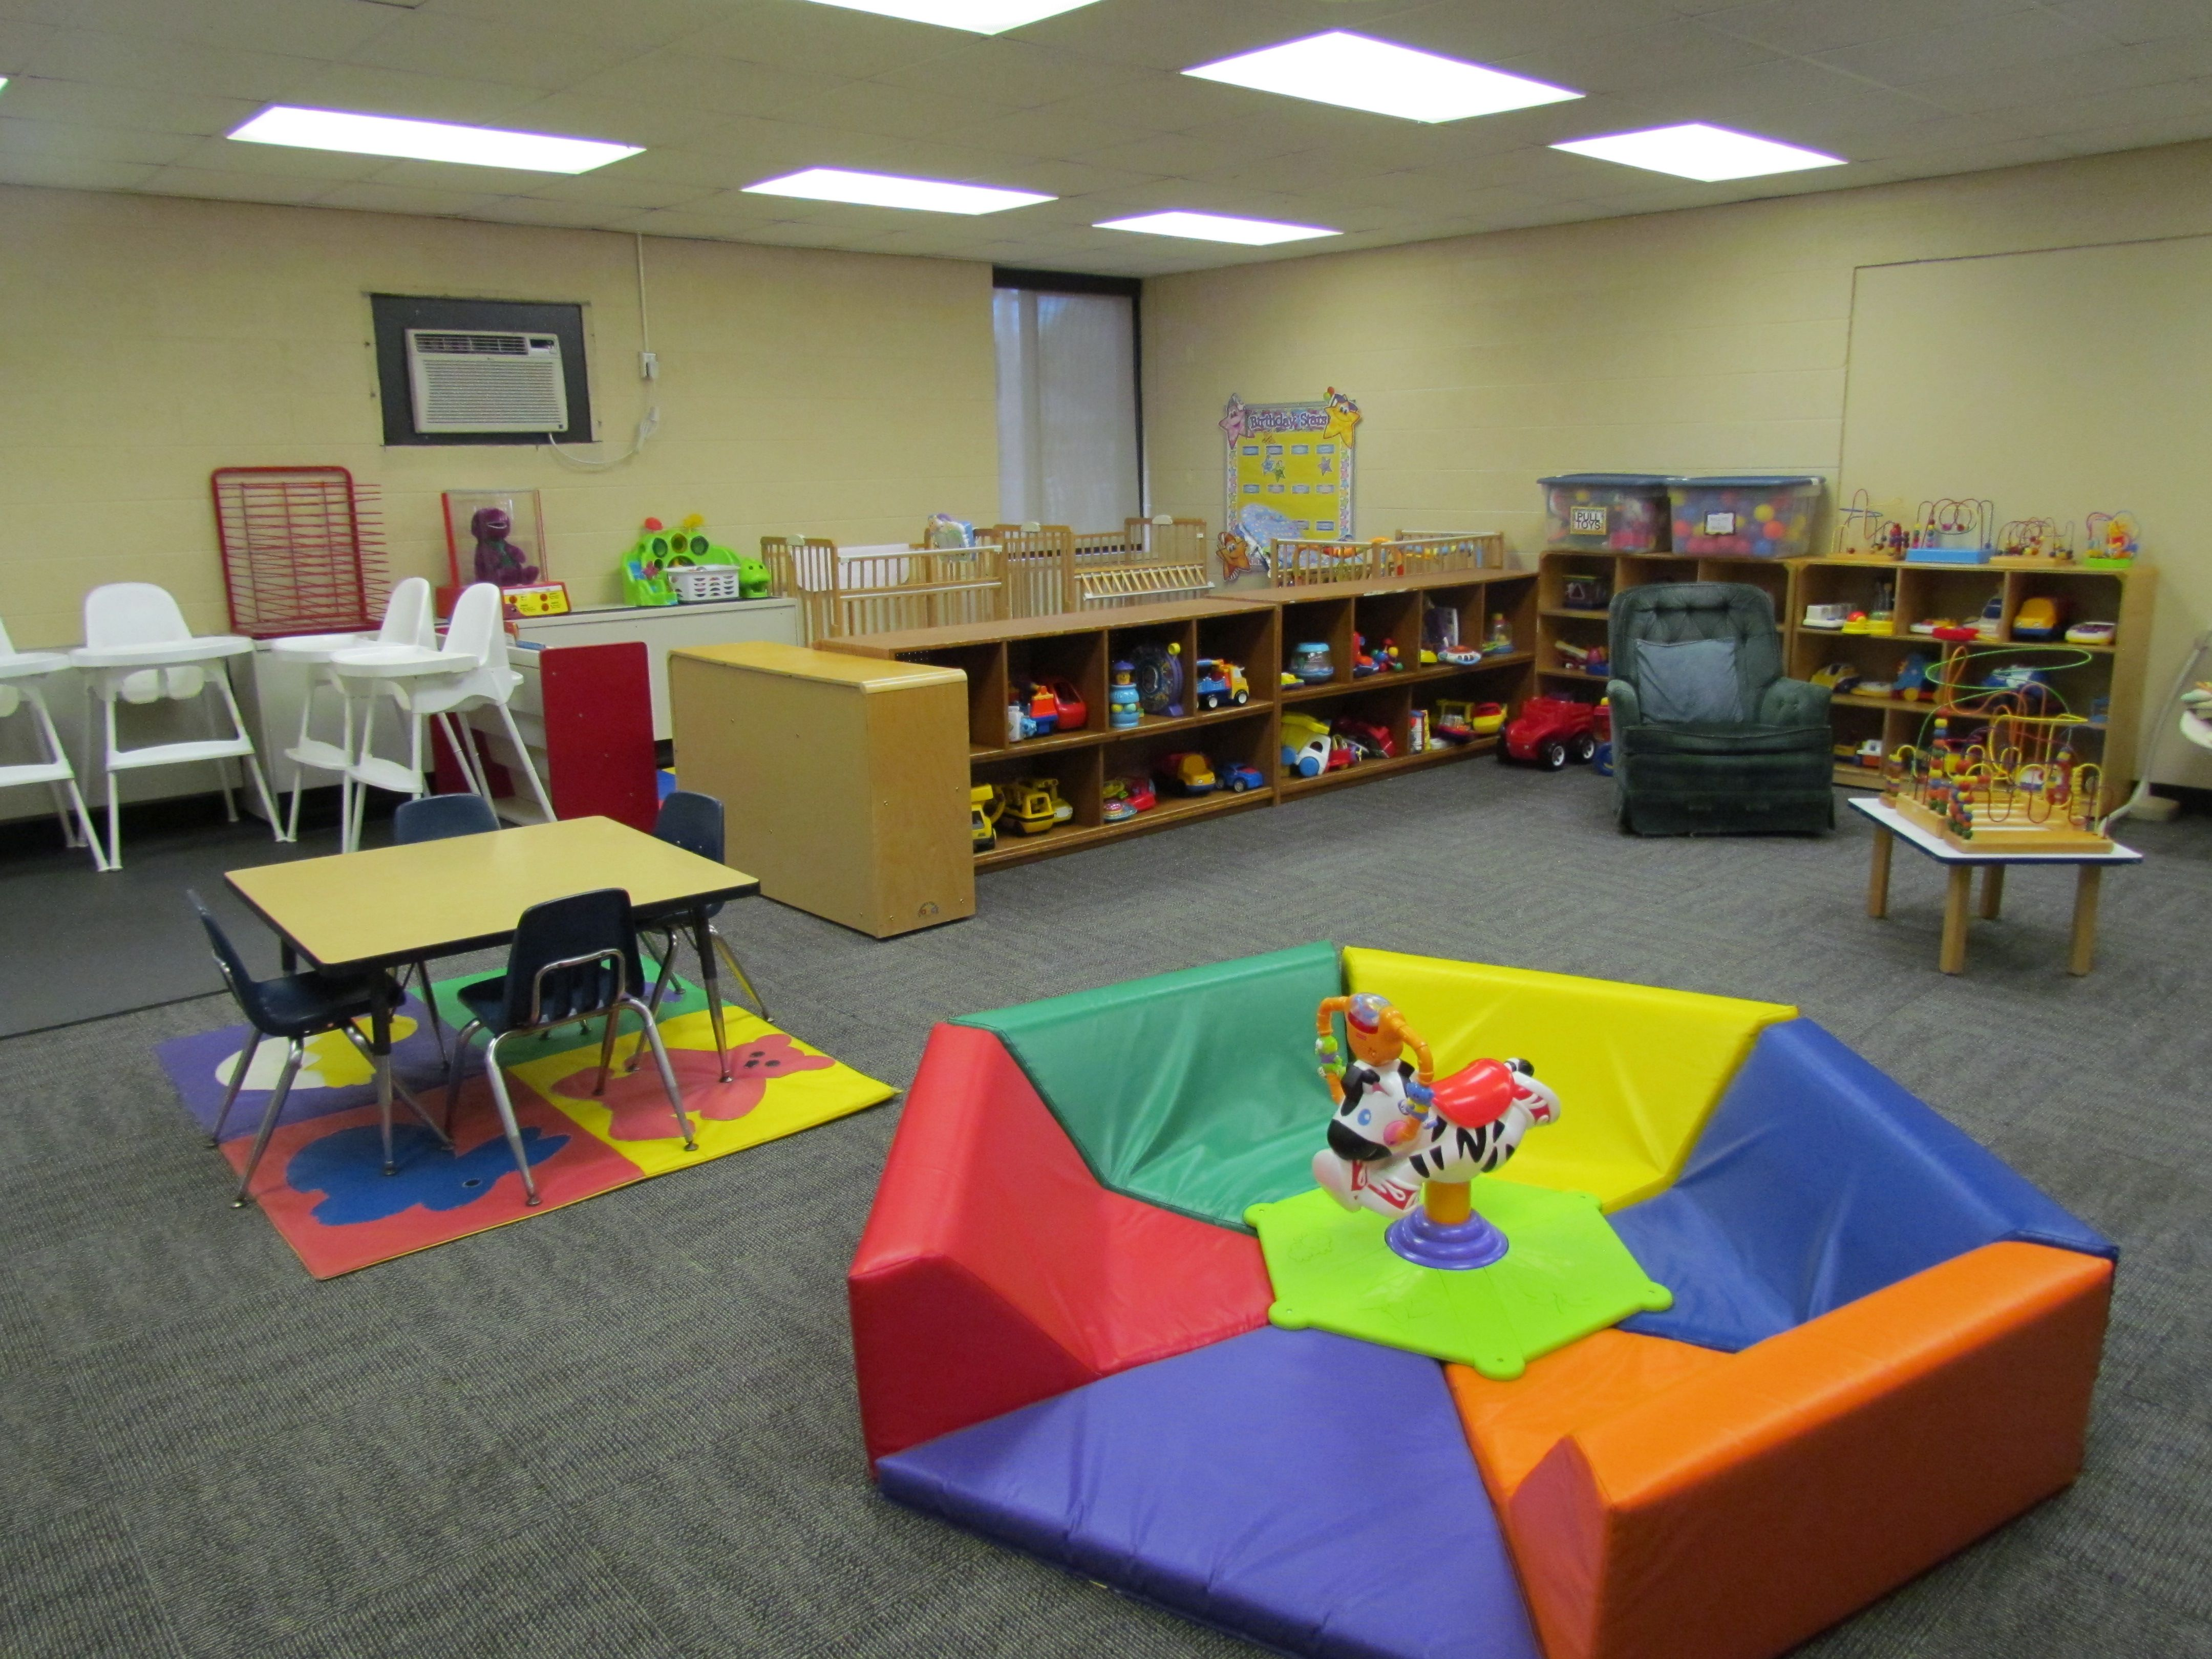 Infant classroom ideas lake shore public schools 28850 Dacare room designs